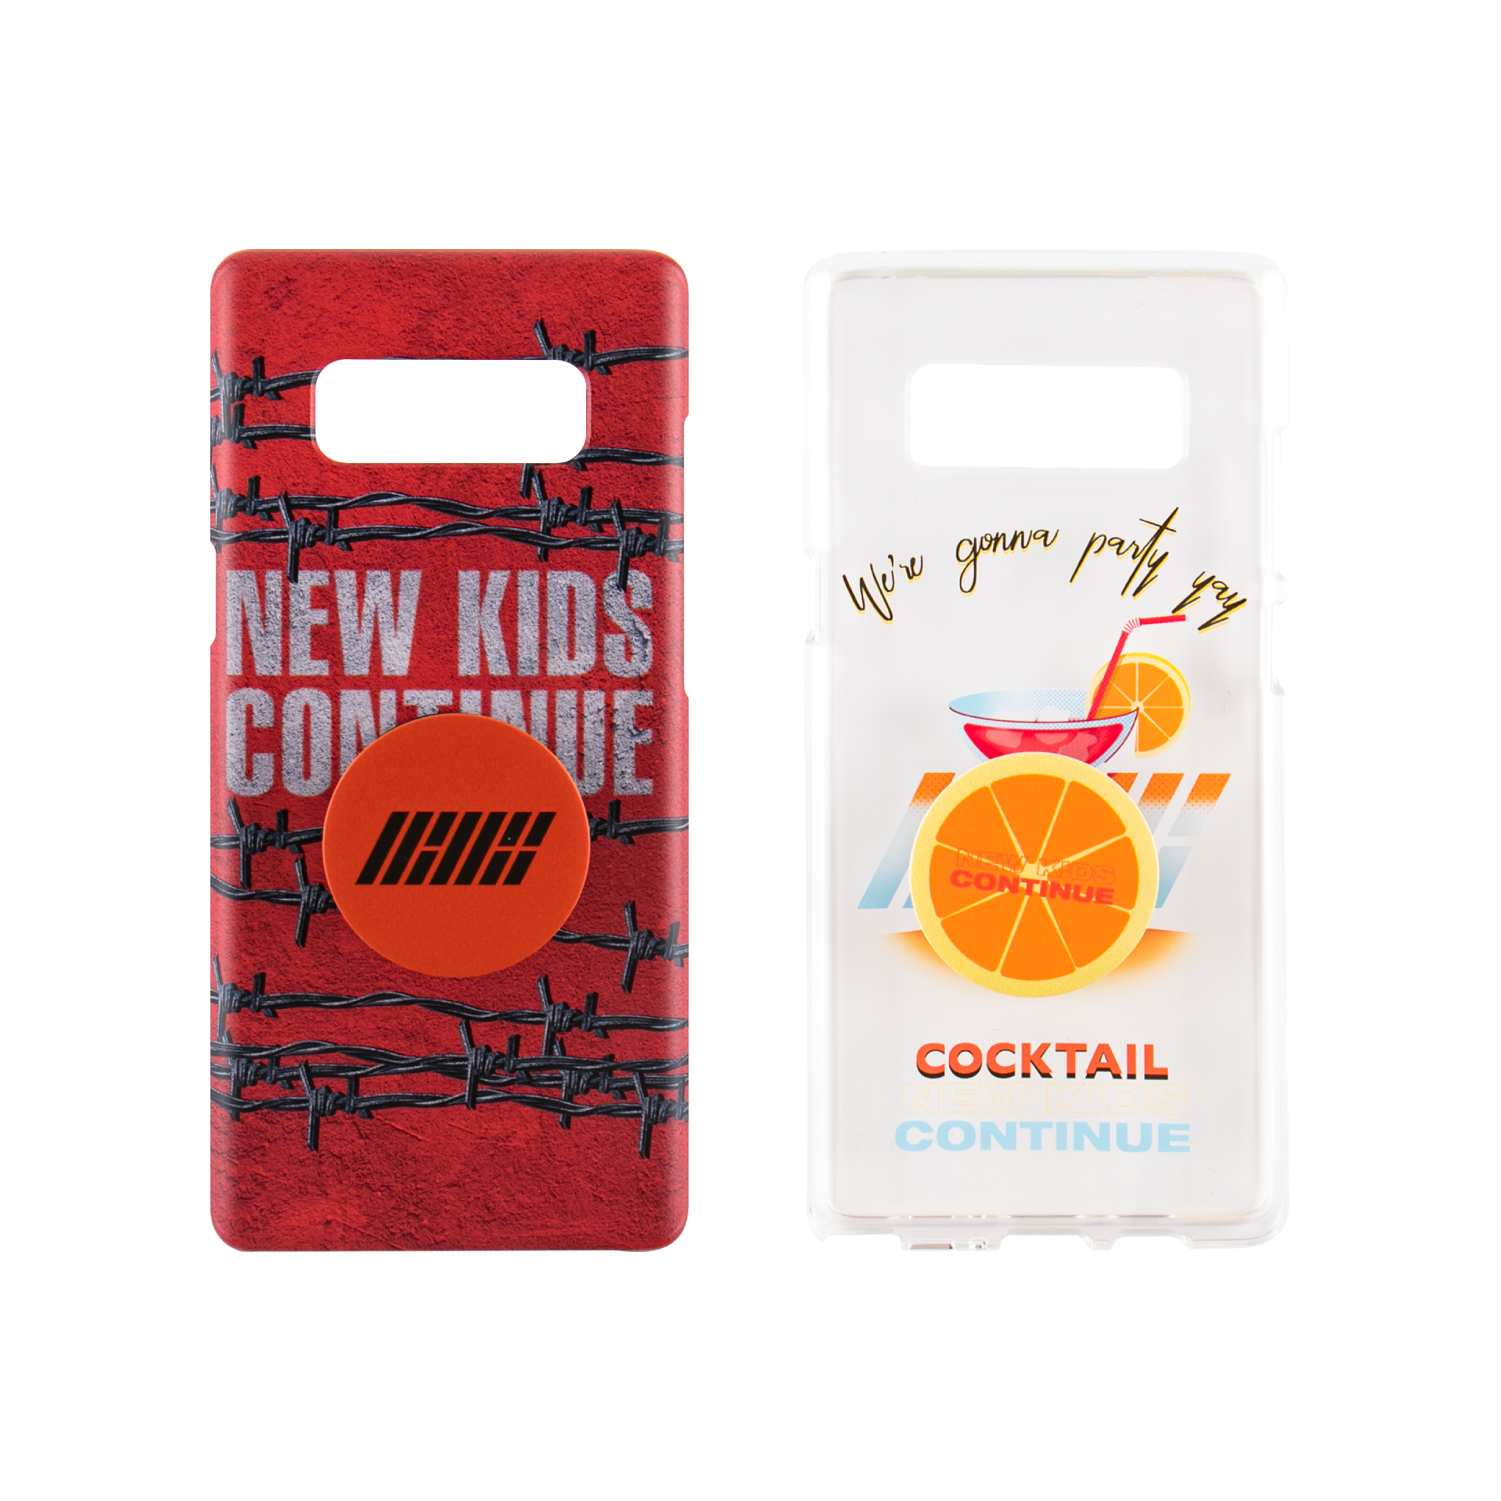 [WOYC] iKON CONTINUE PHONECASE + GRIP HOLDER SET_TYPE 1,2